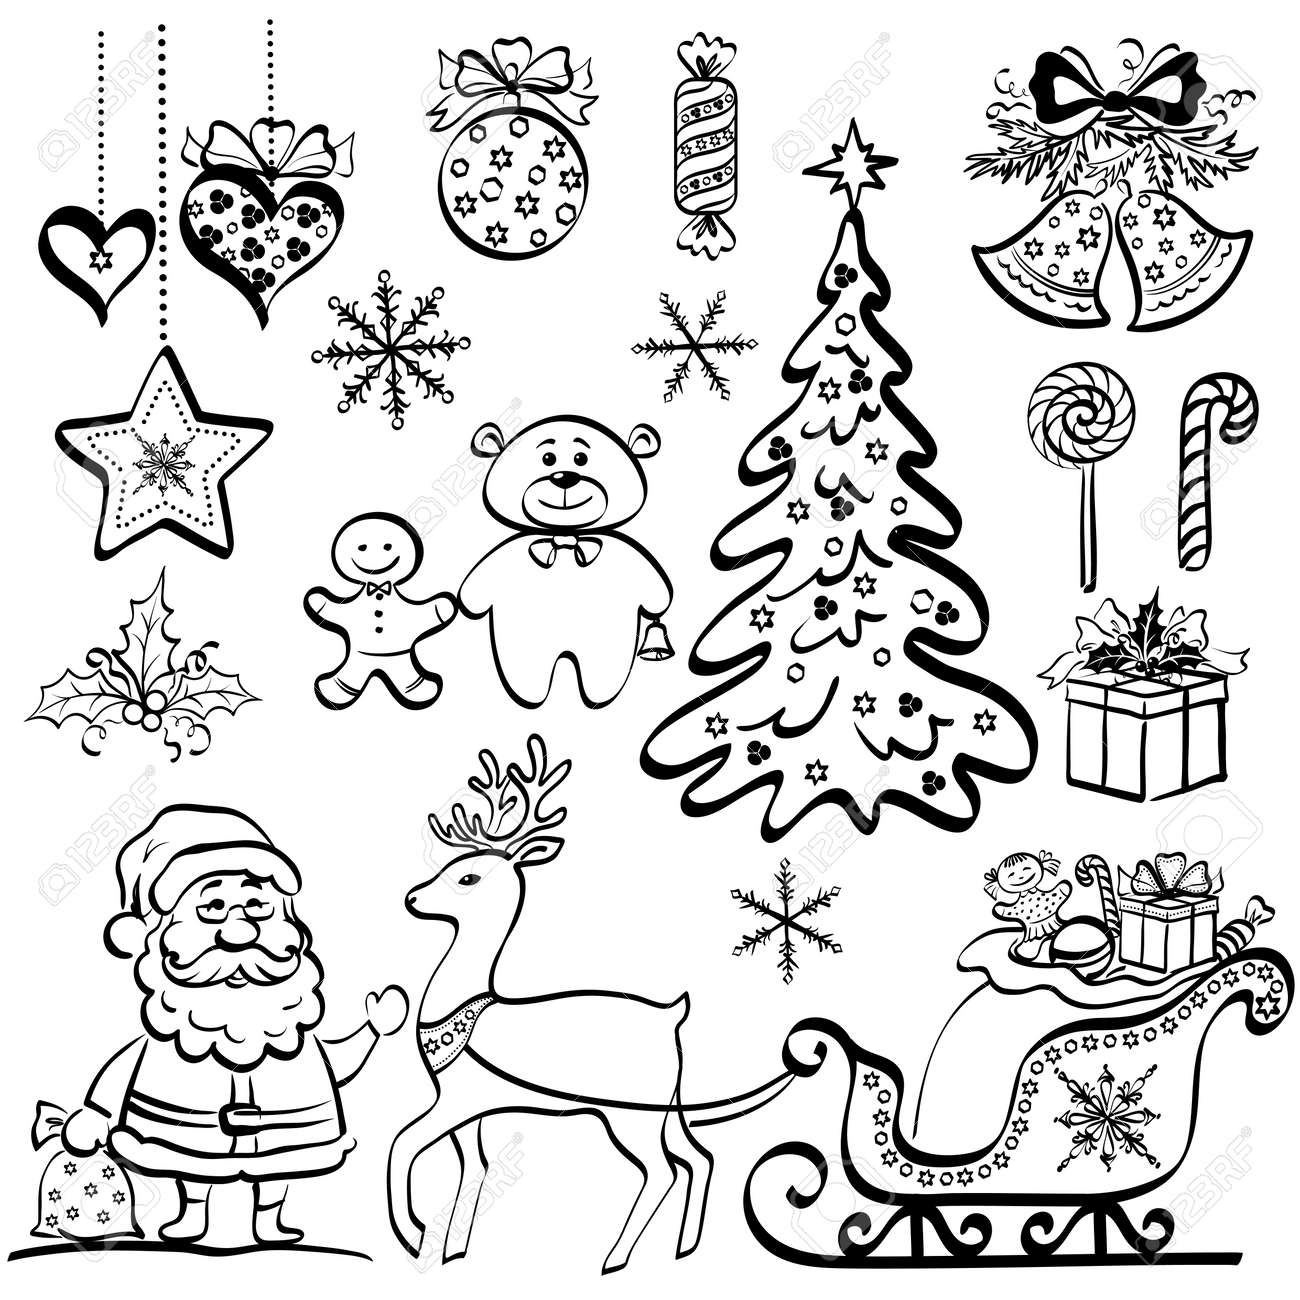 Christmas elements for holiday design, set of black cartoon silhouettes on white background - 15776090